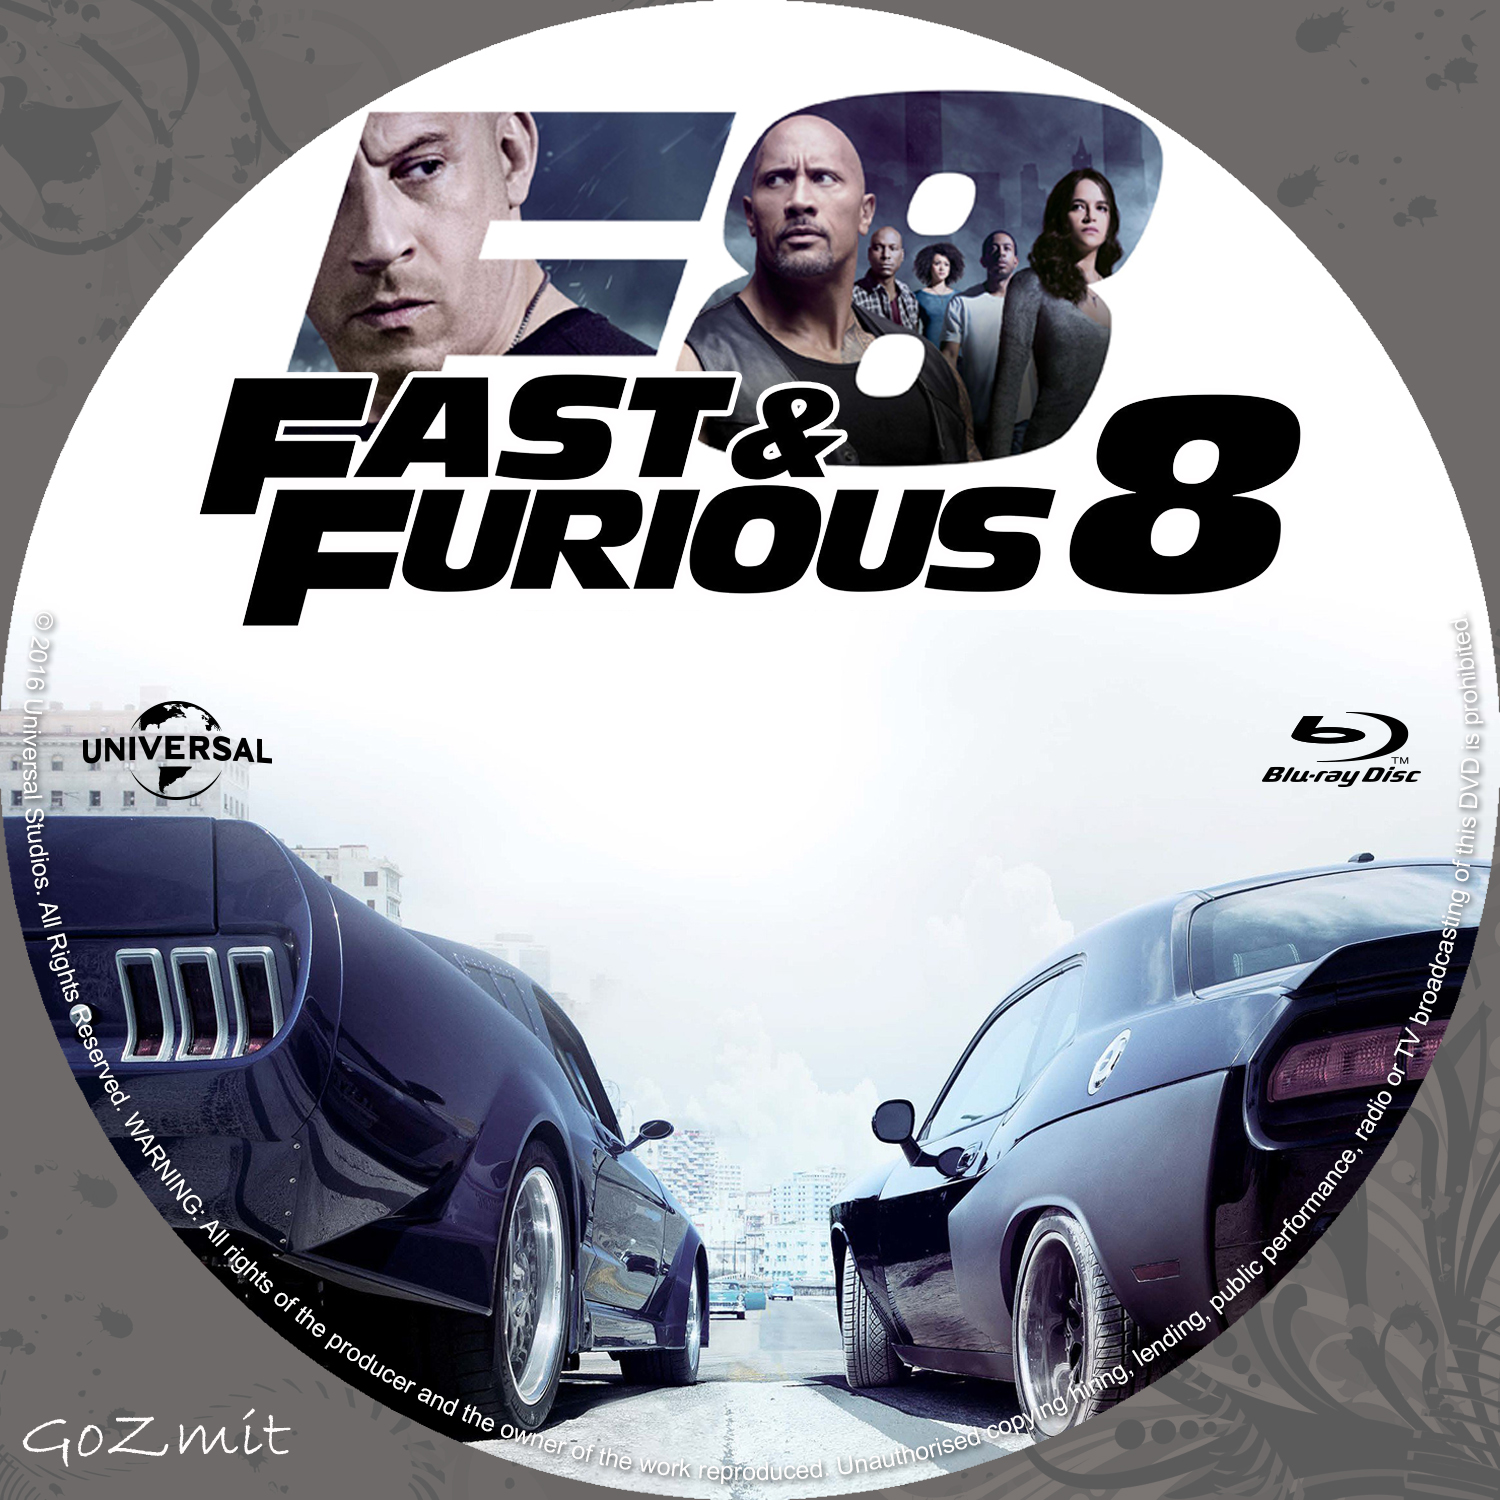 covers box sk fast furious 8 nordic blu ray 2017 high quality dvd blueray movie. Black Bedroom Furniture Sets. Home Design Ideas